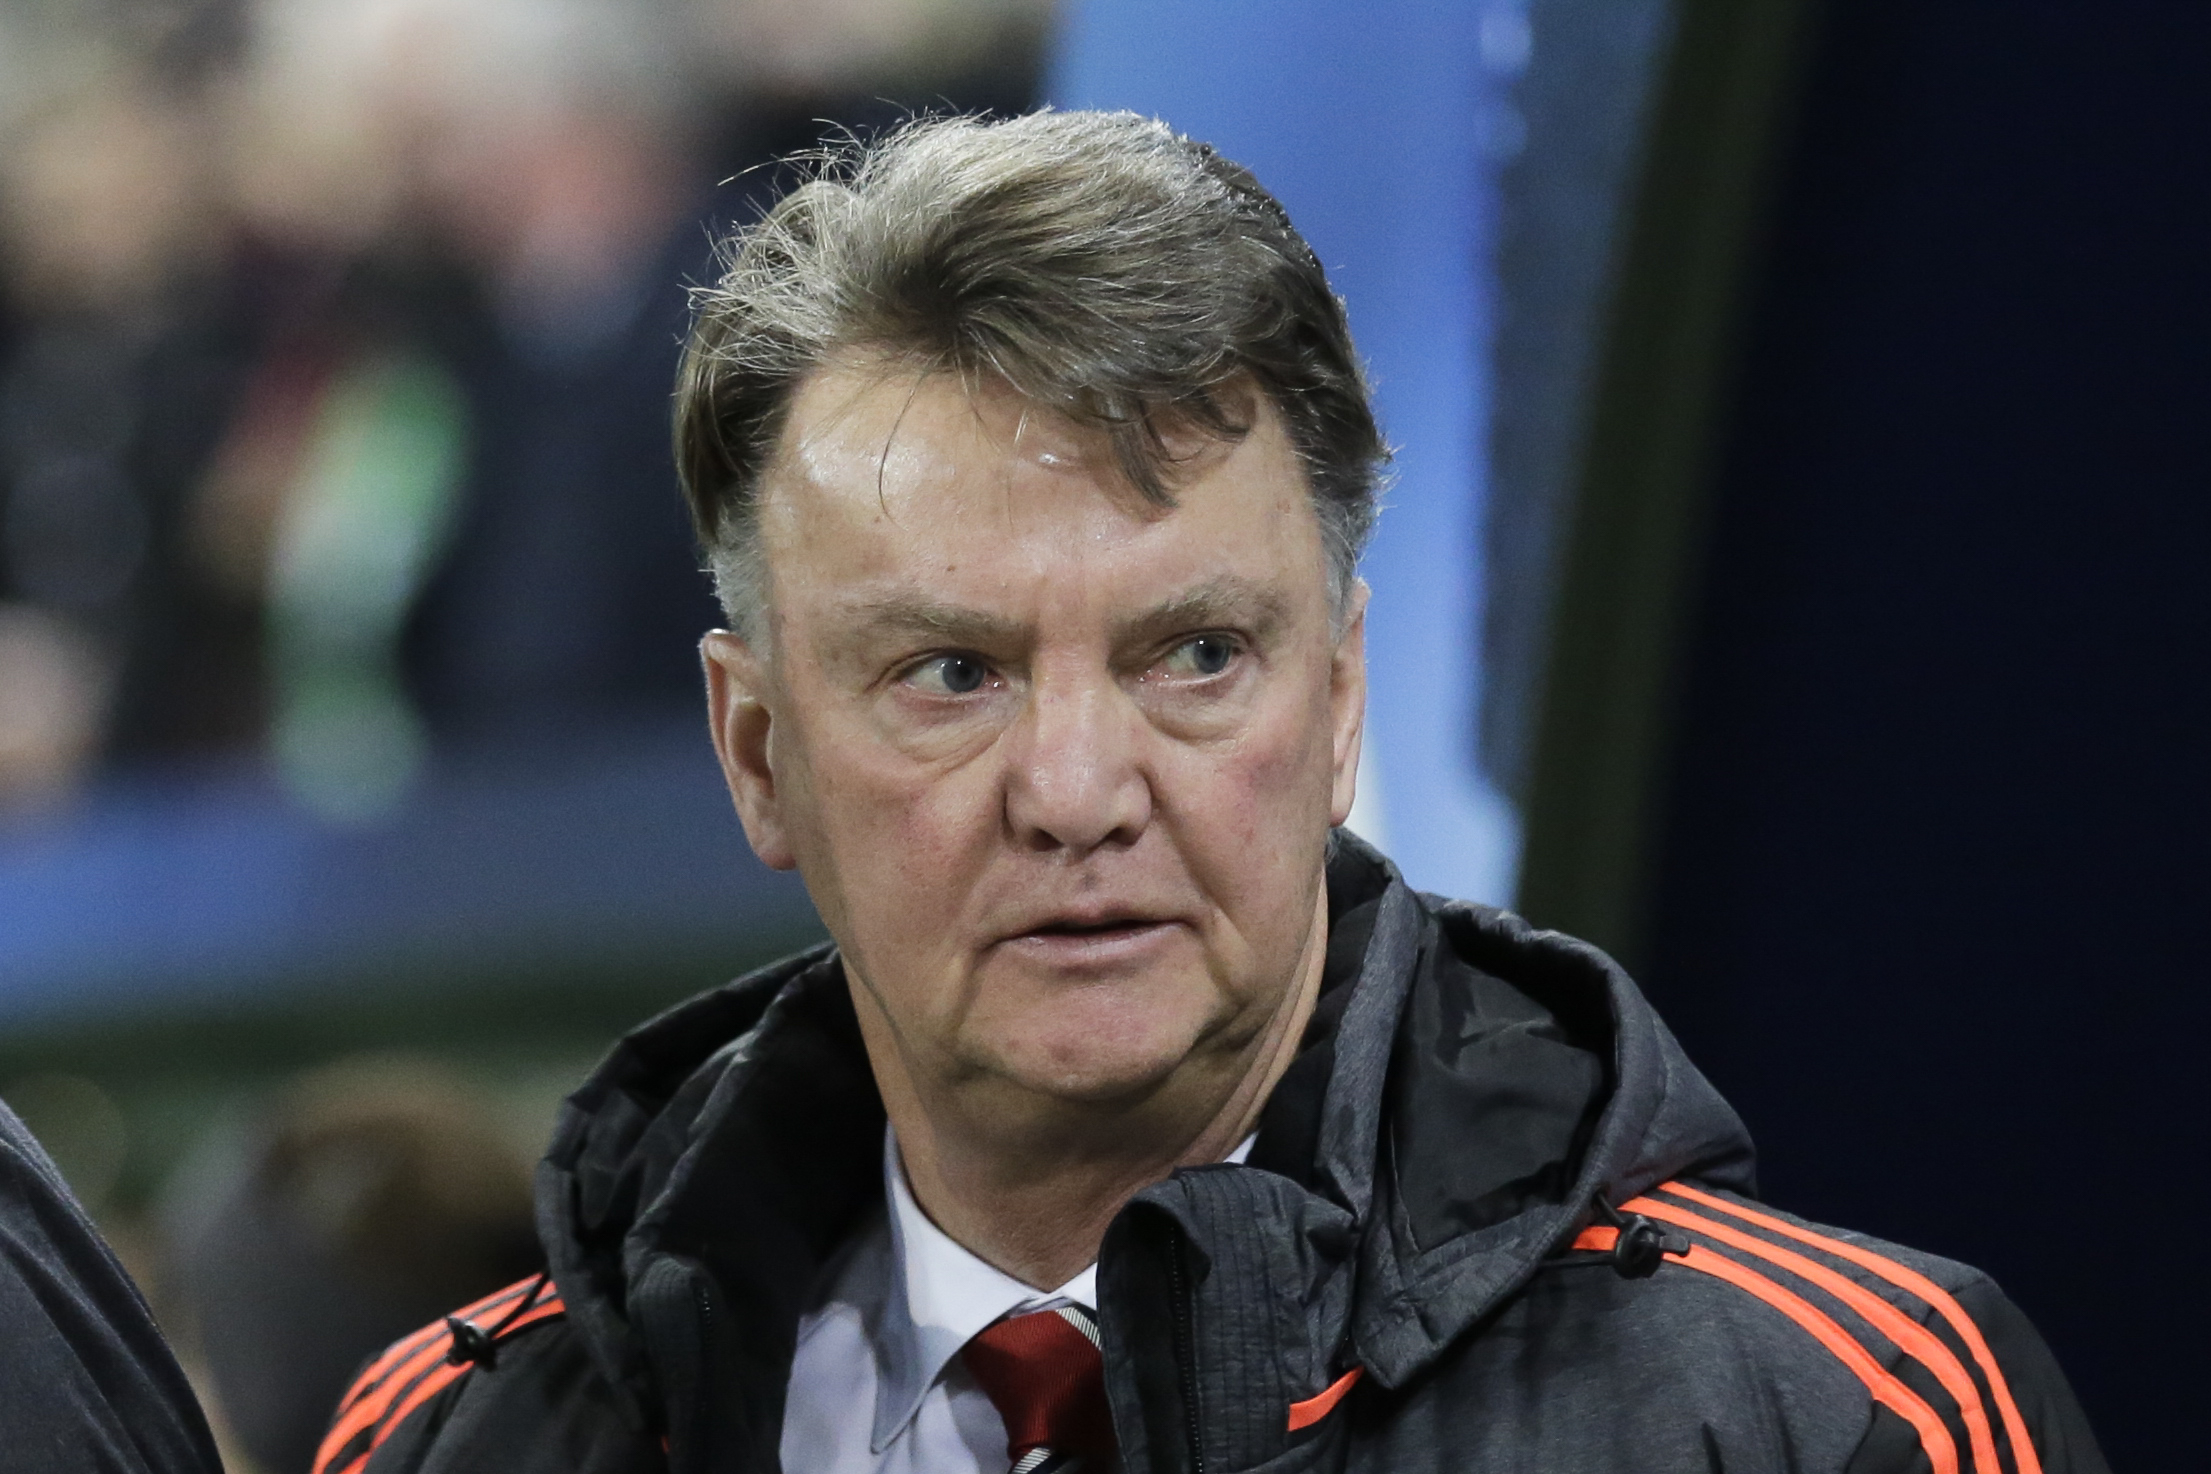 Manchester United's manager Louis van Gaal arrives for the Champions League group B soccer match between VfL Wolfsburg and Manchester United in Wolfsburg, Germany, Tuesday, Dec. 8, 2015. Photo: AP